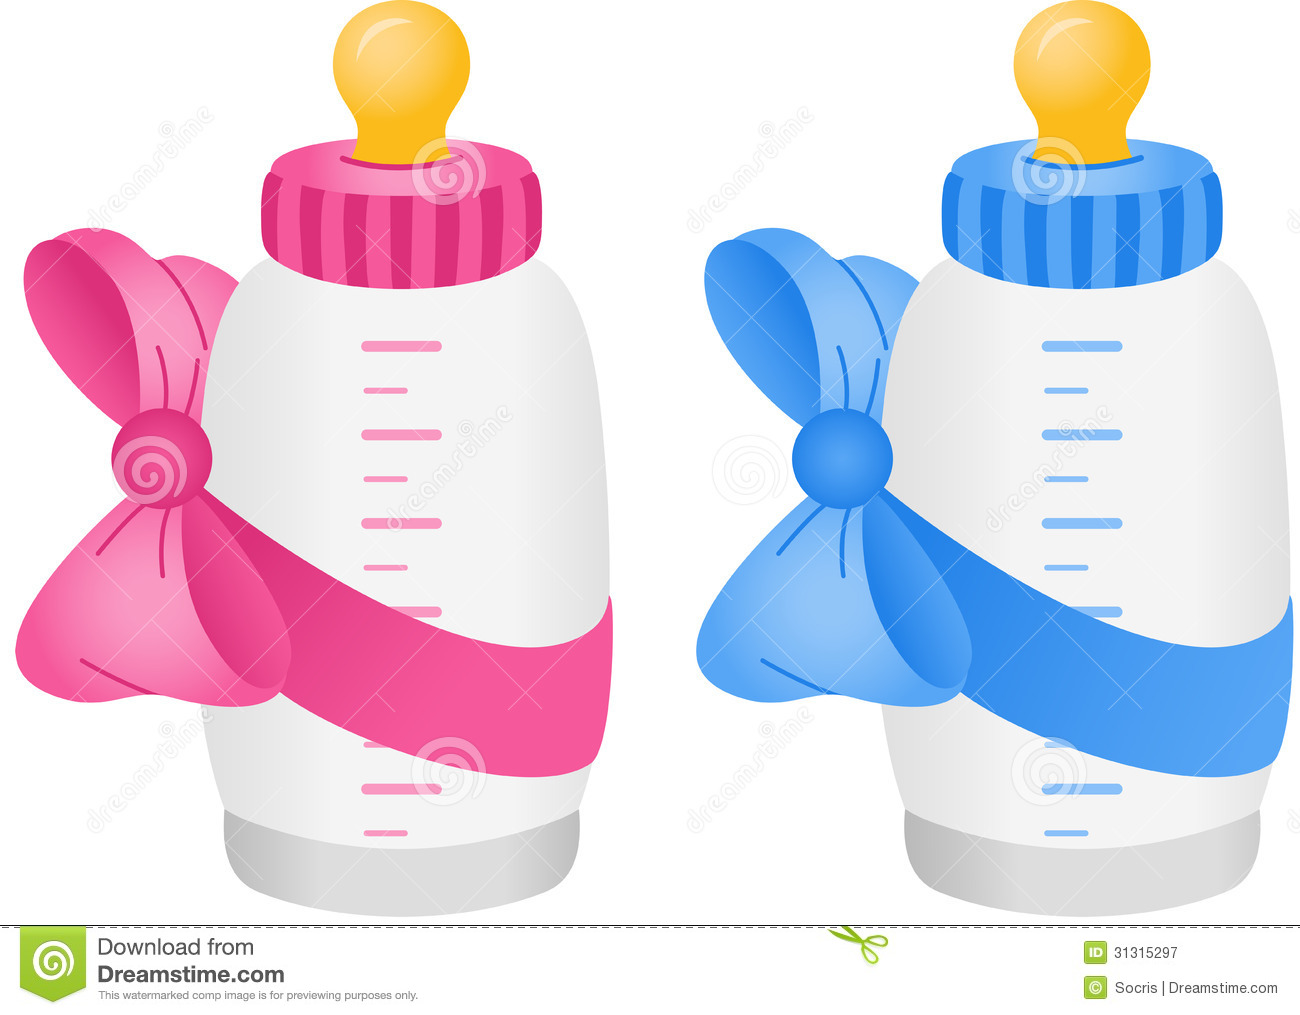 ... image representing a baby bottle with bow tie, isolated on white